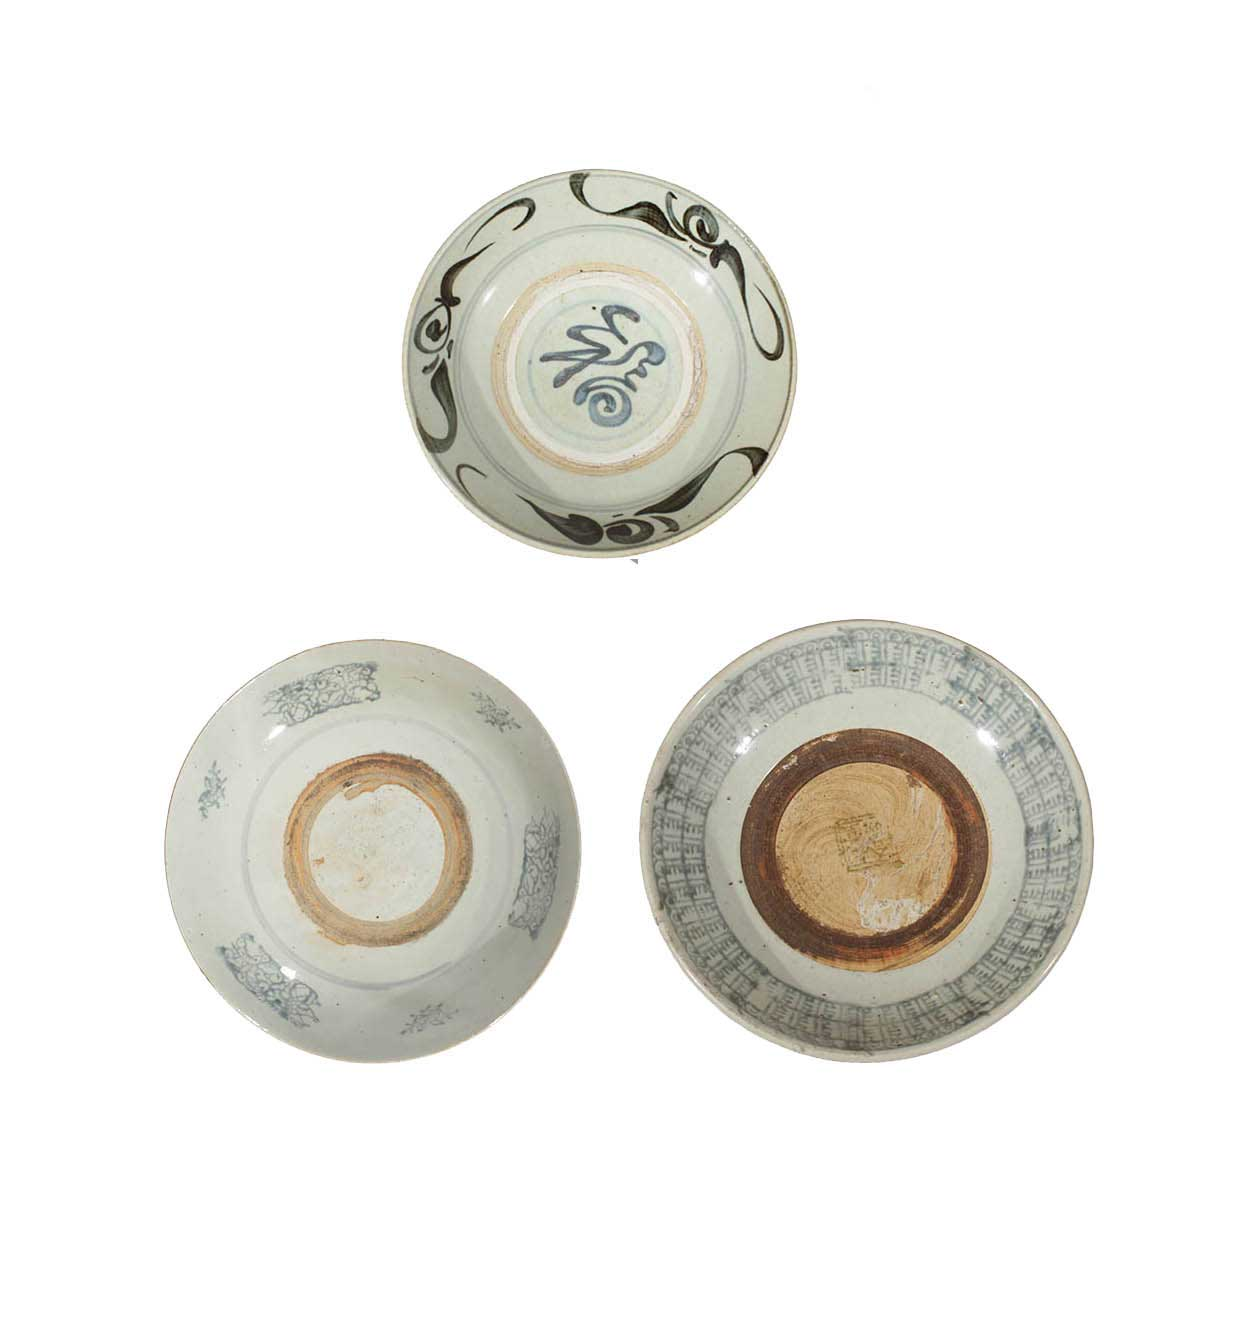 Three 19th century kitchen Qing dishes